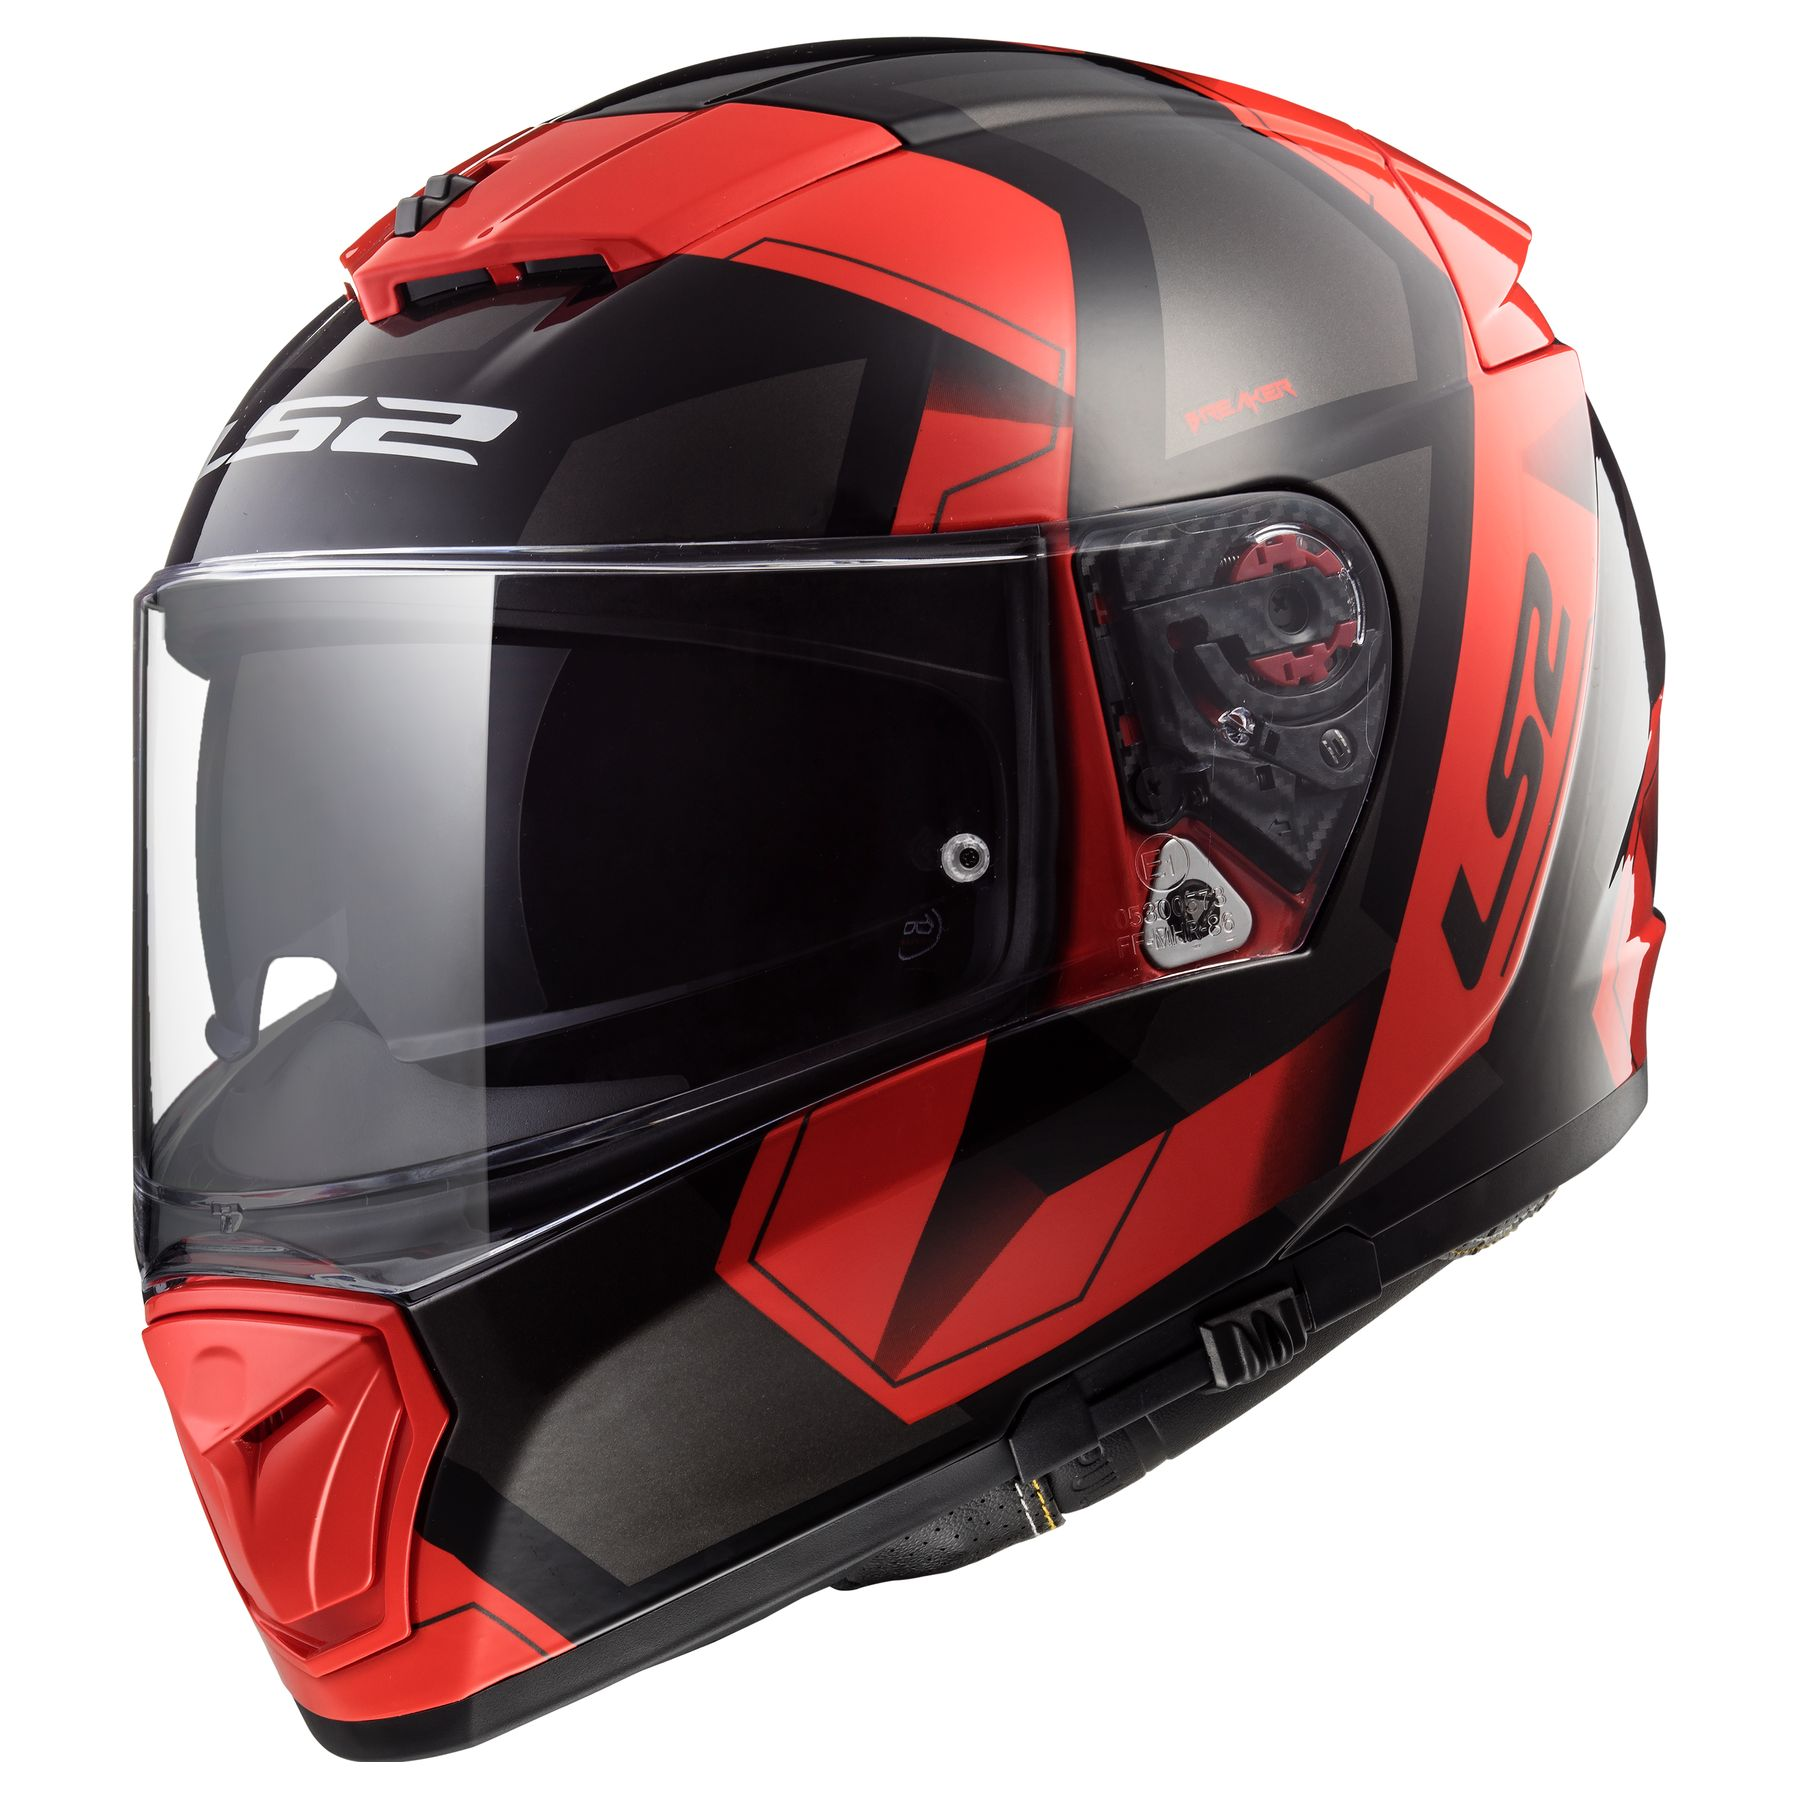 Casque LS2 FF390 - BREAKER - PHYSICS